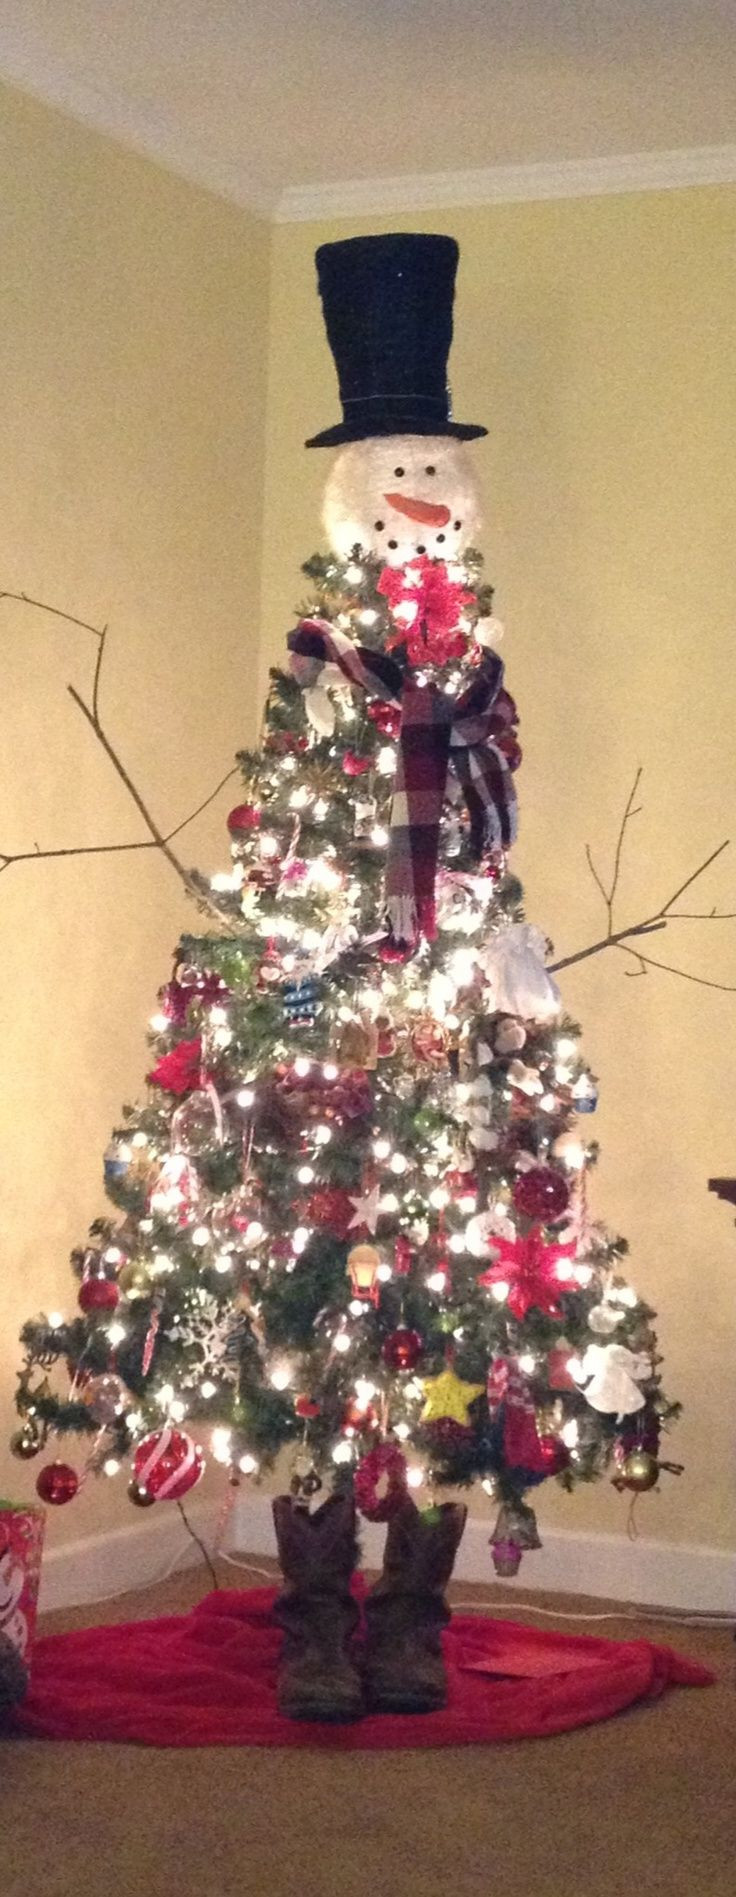 Unusual Christmas Decorations Elegant Unusual Christmas Trees top the Most Spectacular Diy Of Delightful 42 Pictures Unusual Christmas Decorations